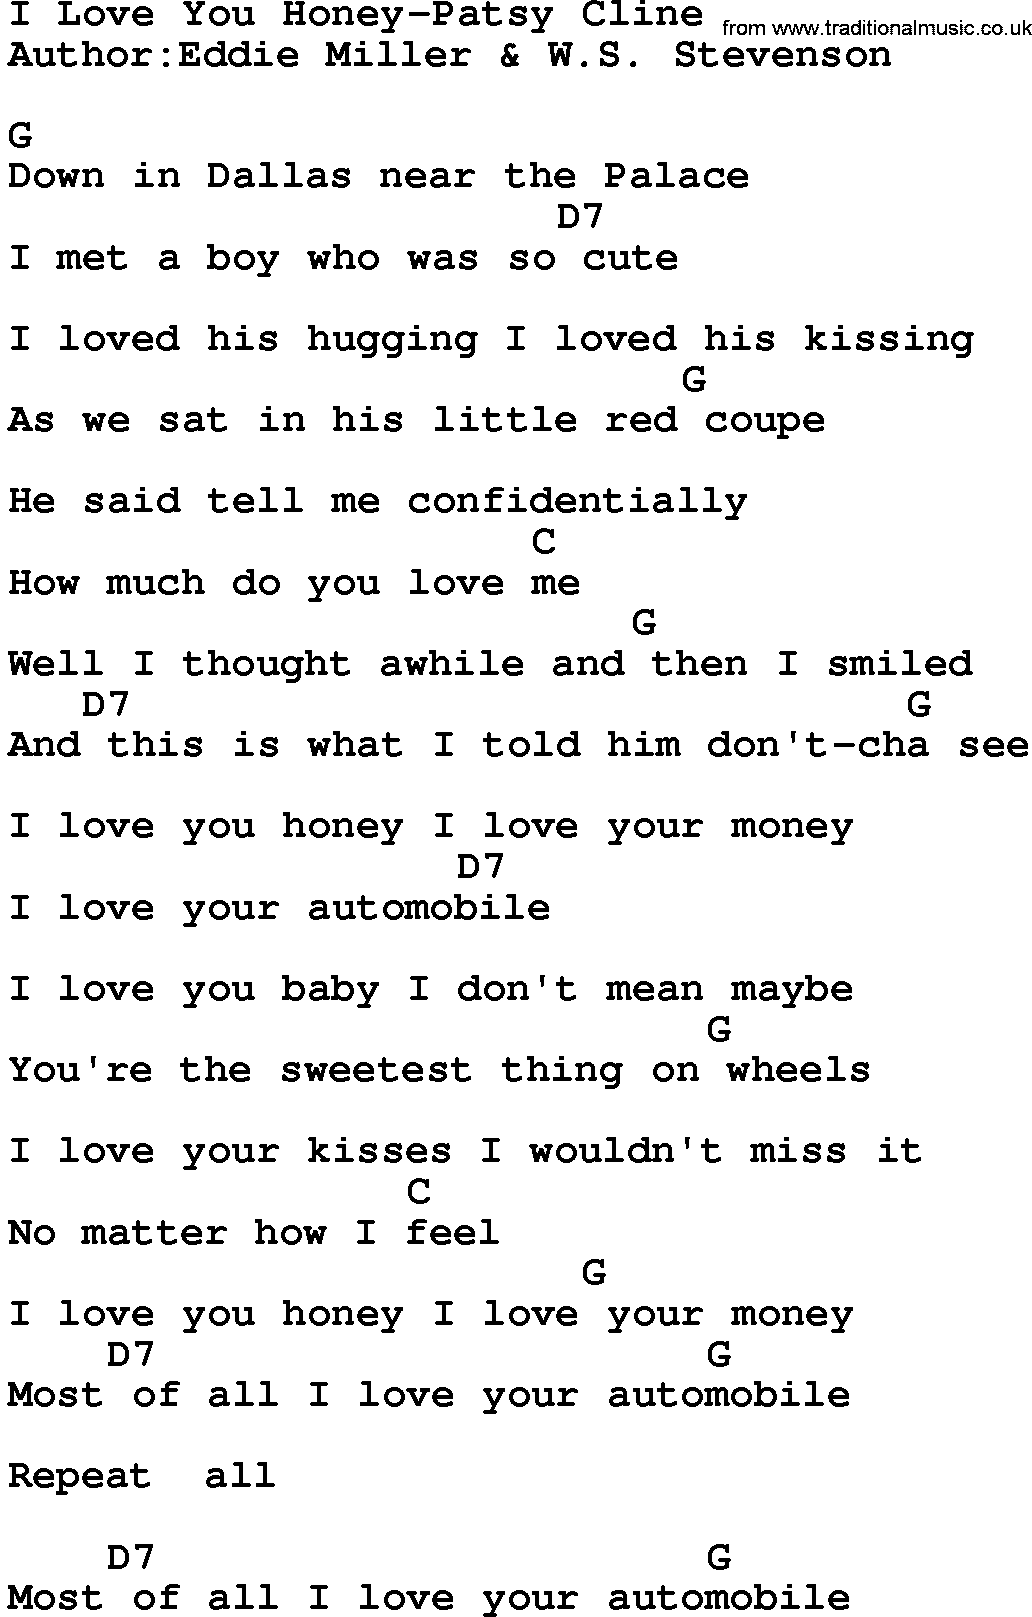 country musici love you honey patsy cline lyrics and chords